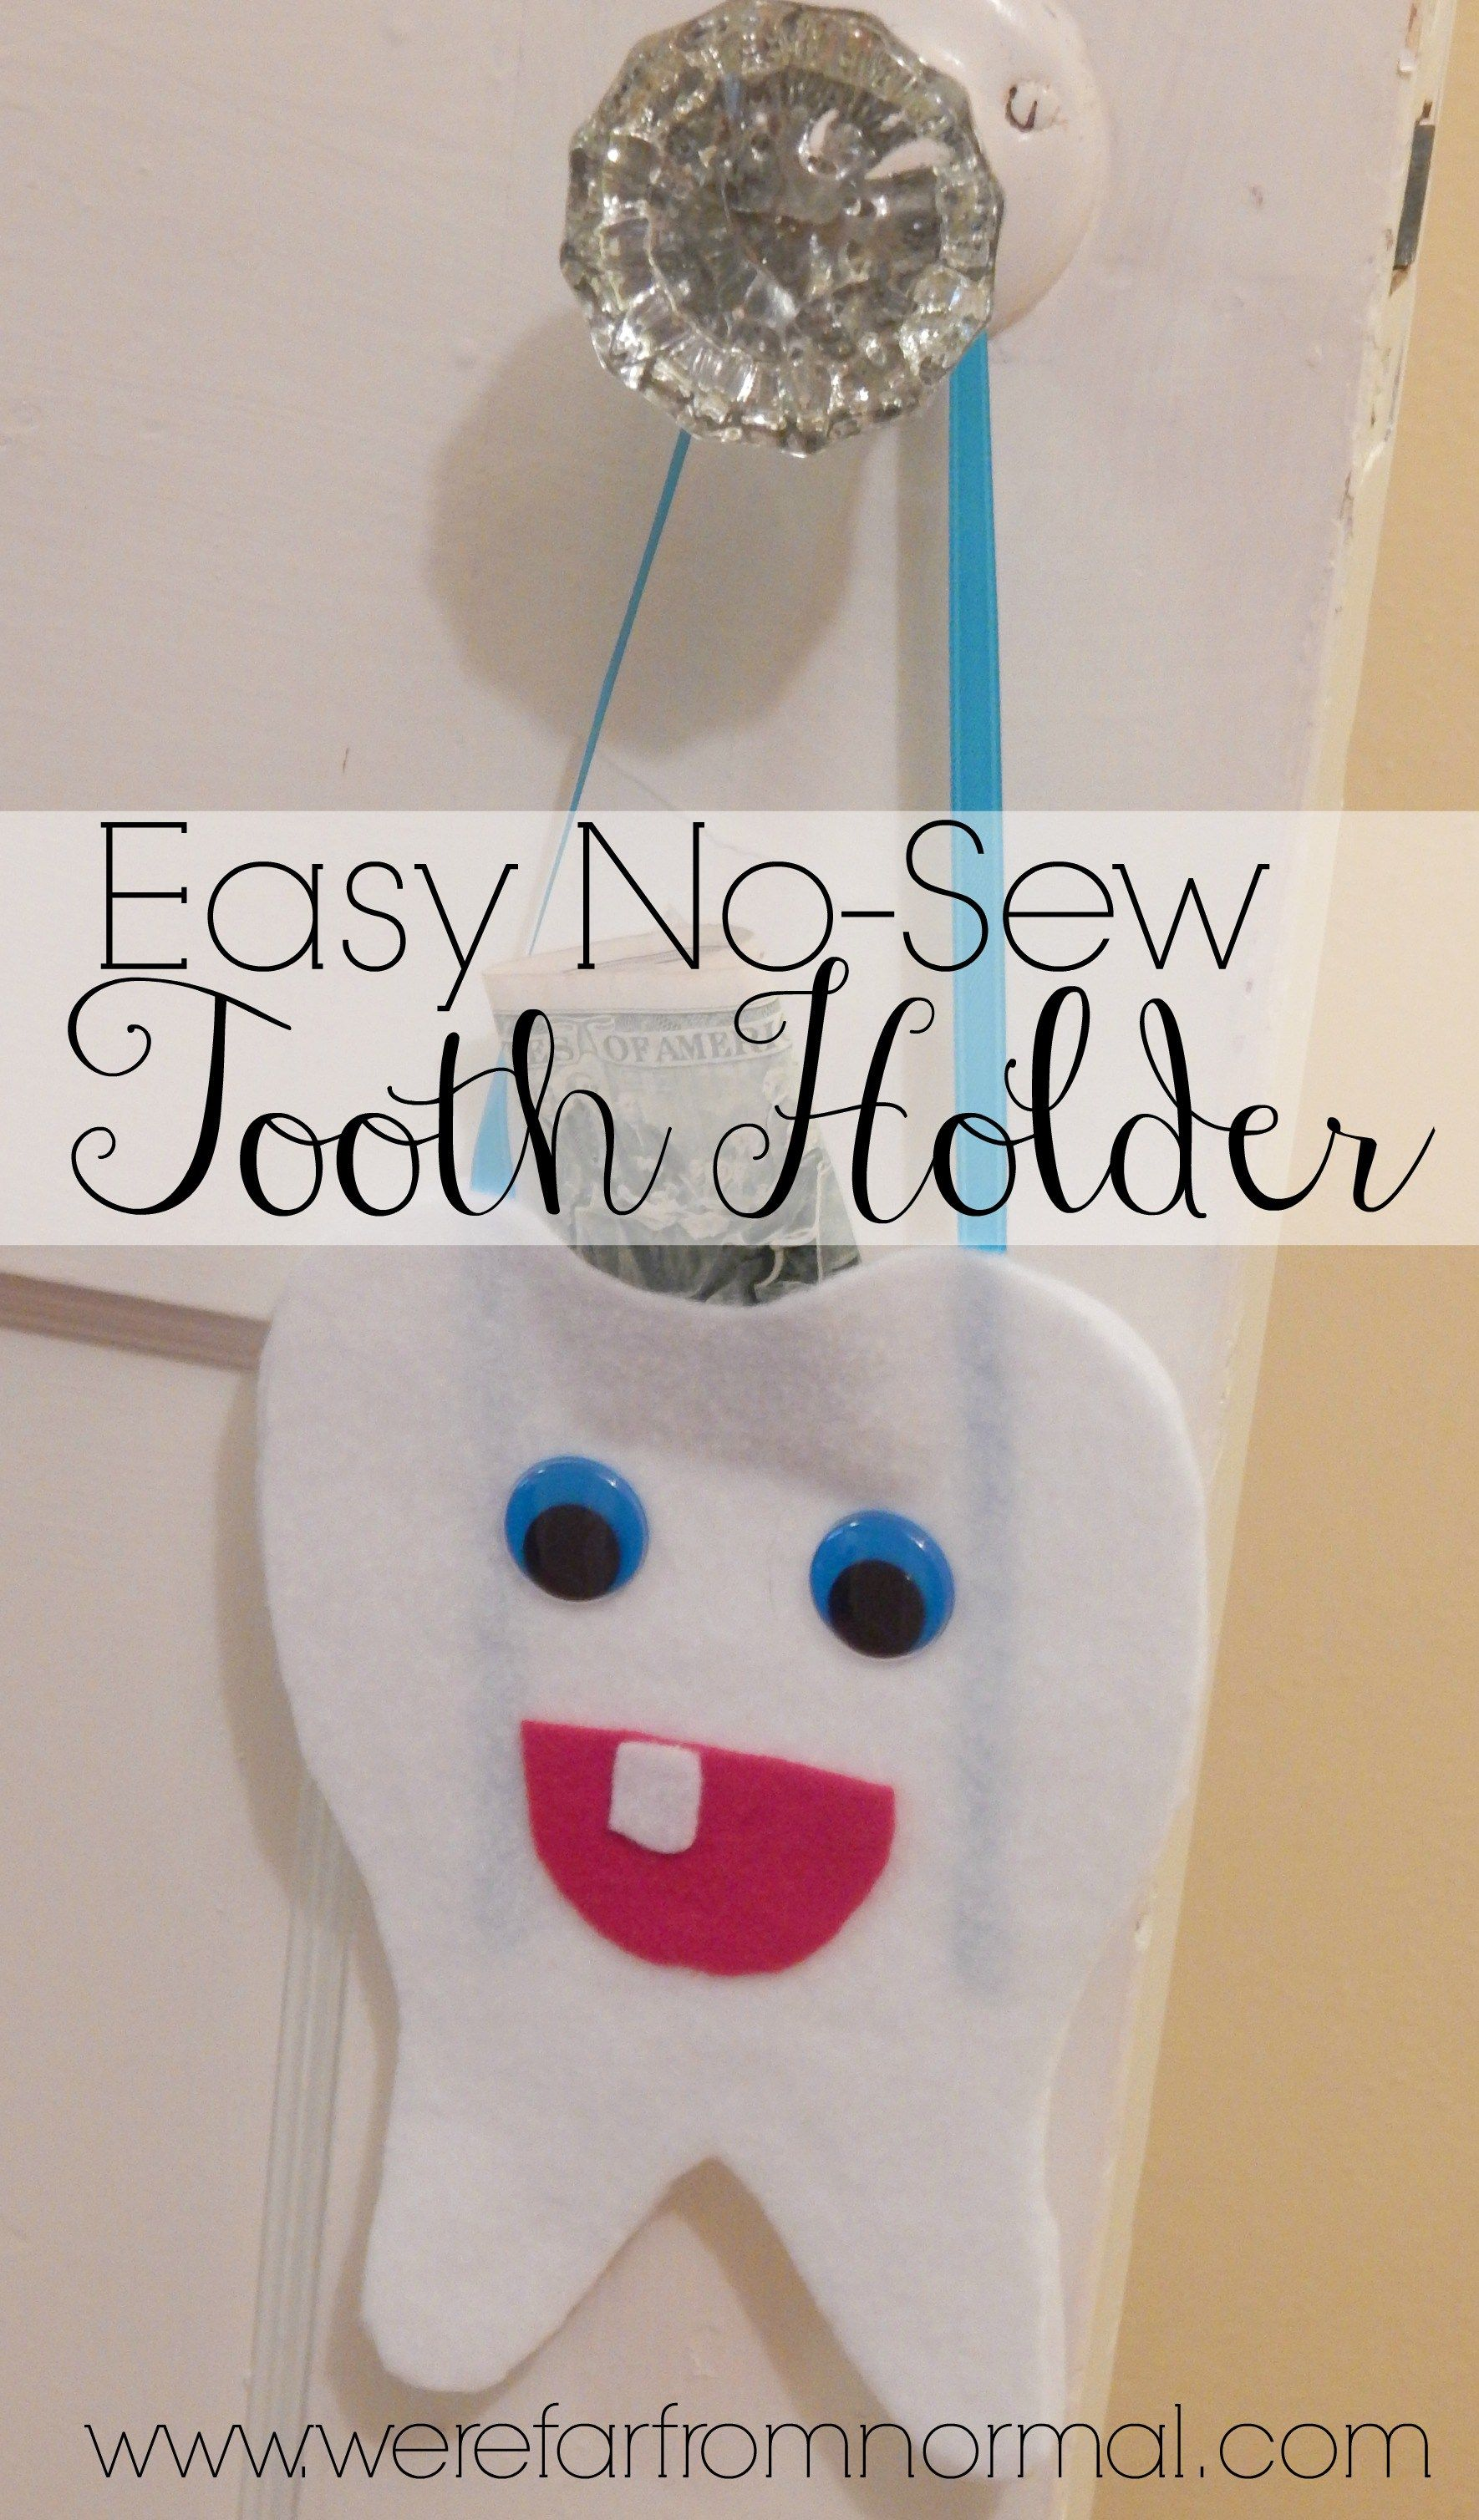 No Sew Tooth Holder For The Tooth Fairy